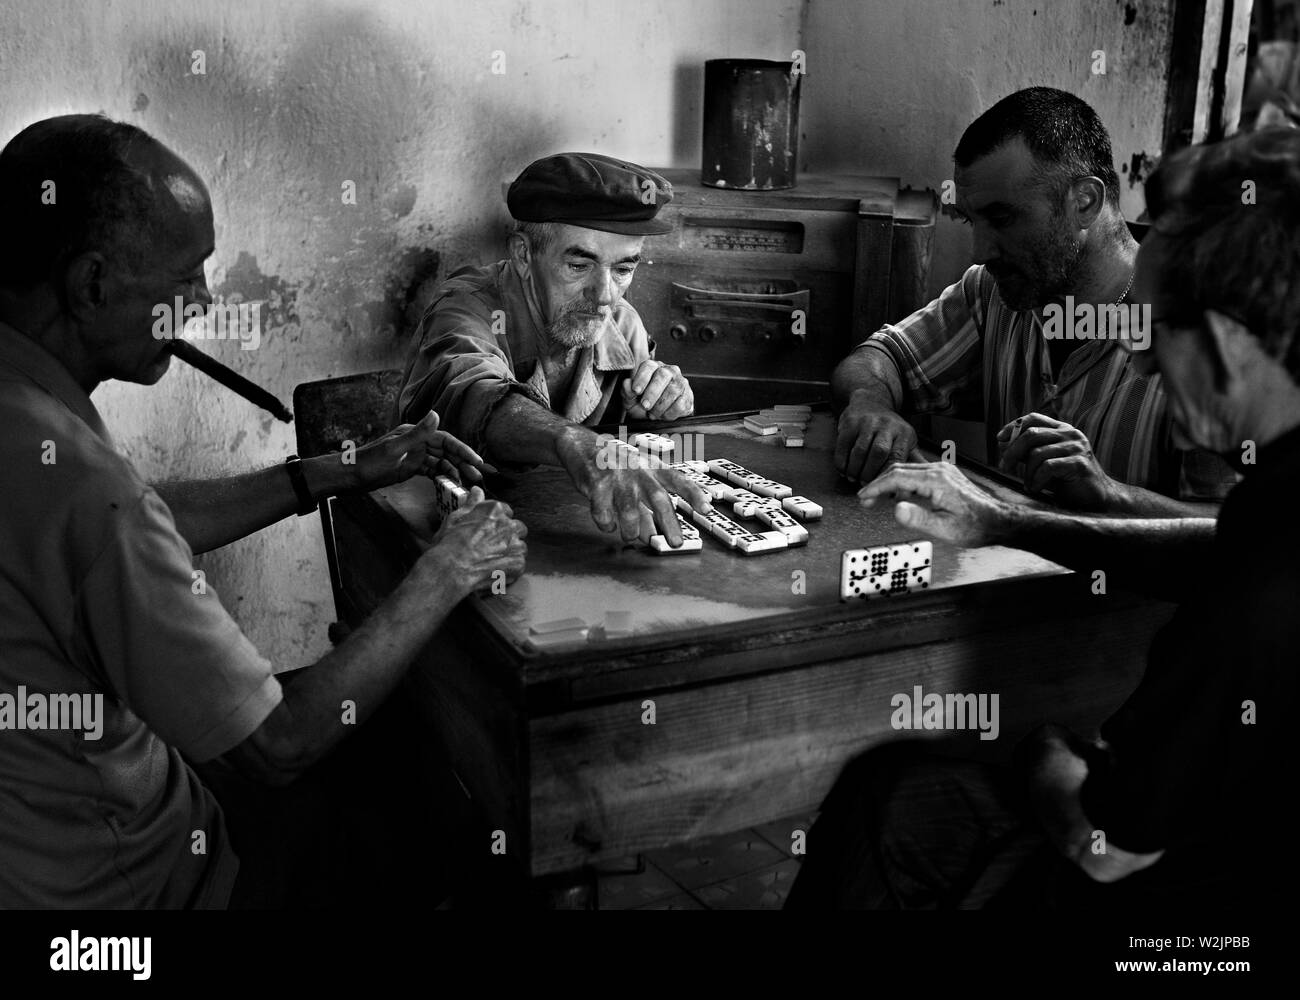 Men playing dominoes in a house in Remedios. - Stock Image